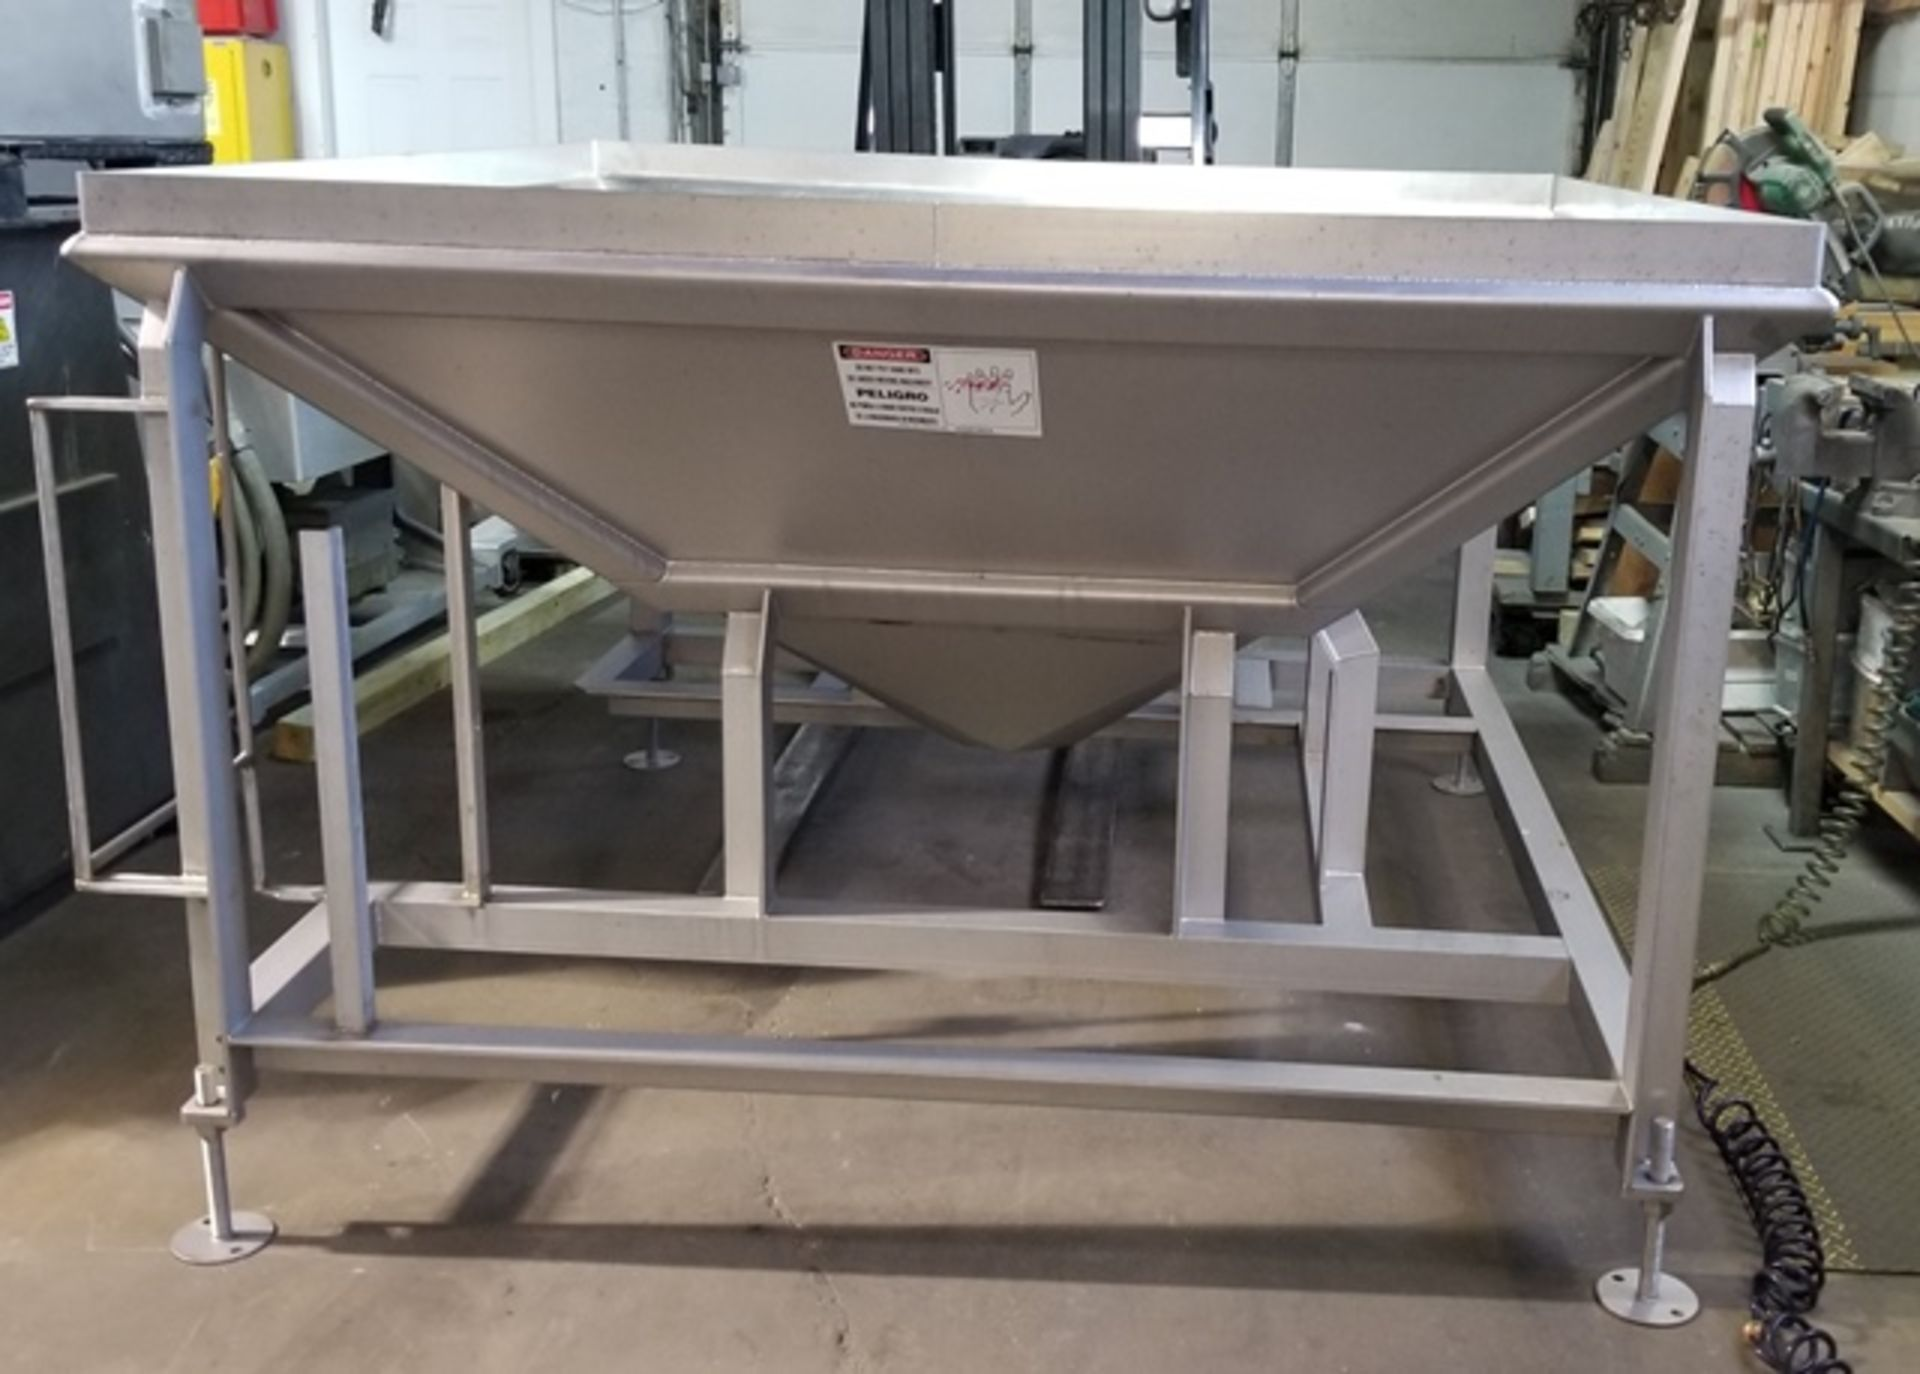 Lot 181 - Fusion Tech Stainless Steel Hopper, used to transfer ground or emulsified food products